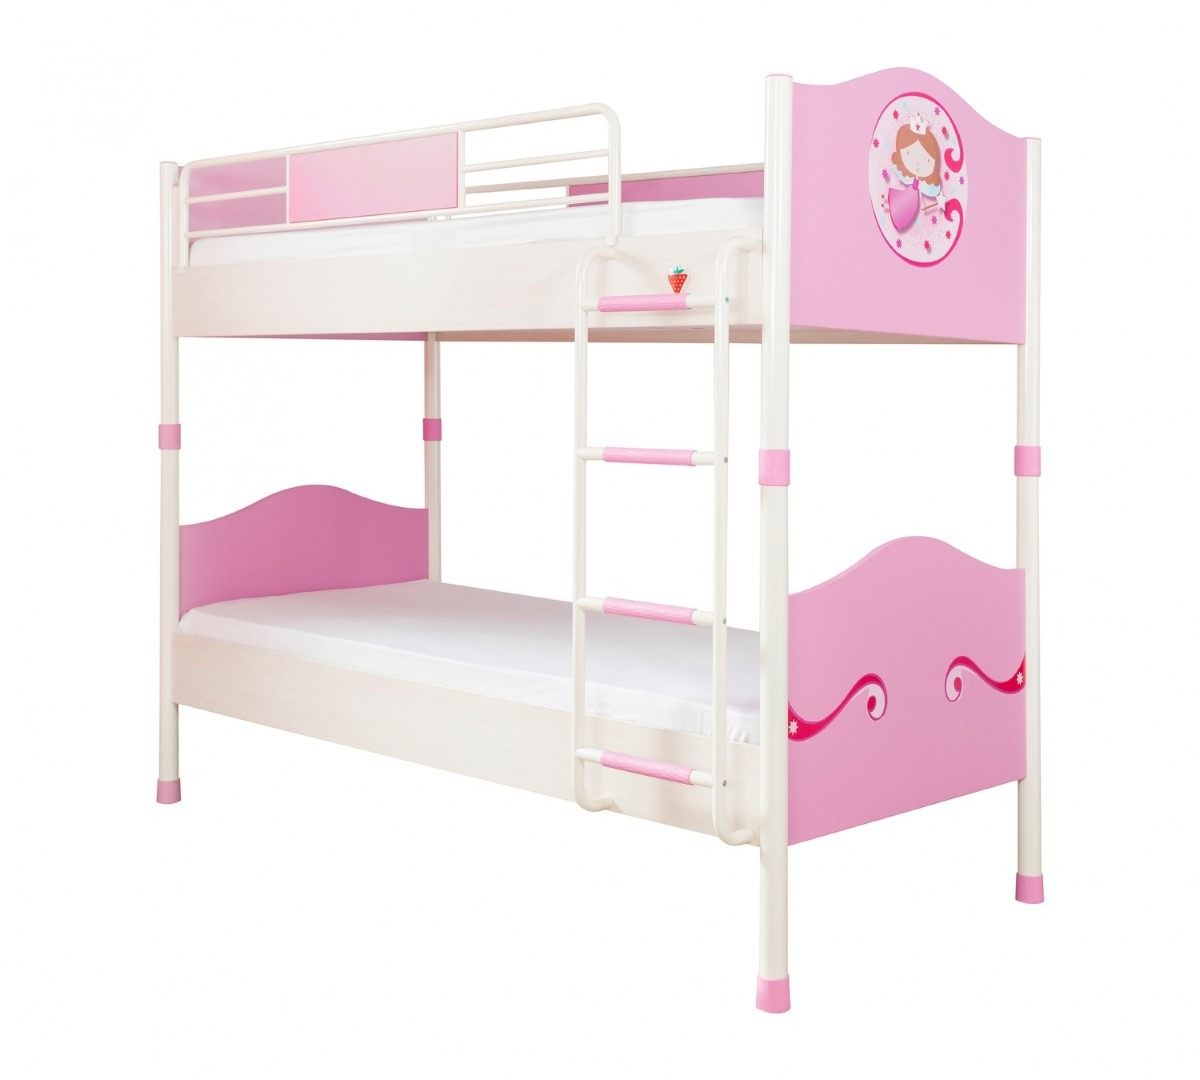 Sl-Princess-Bunk-Bed1